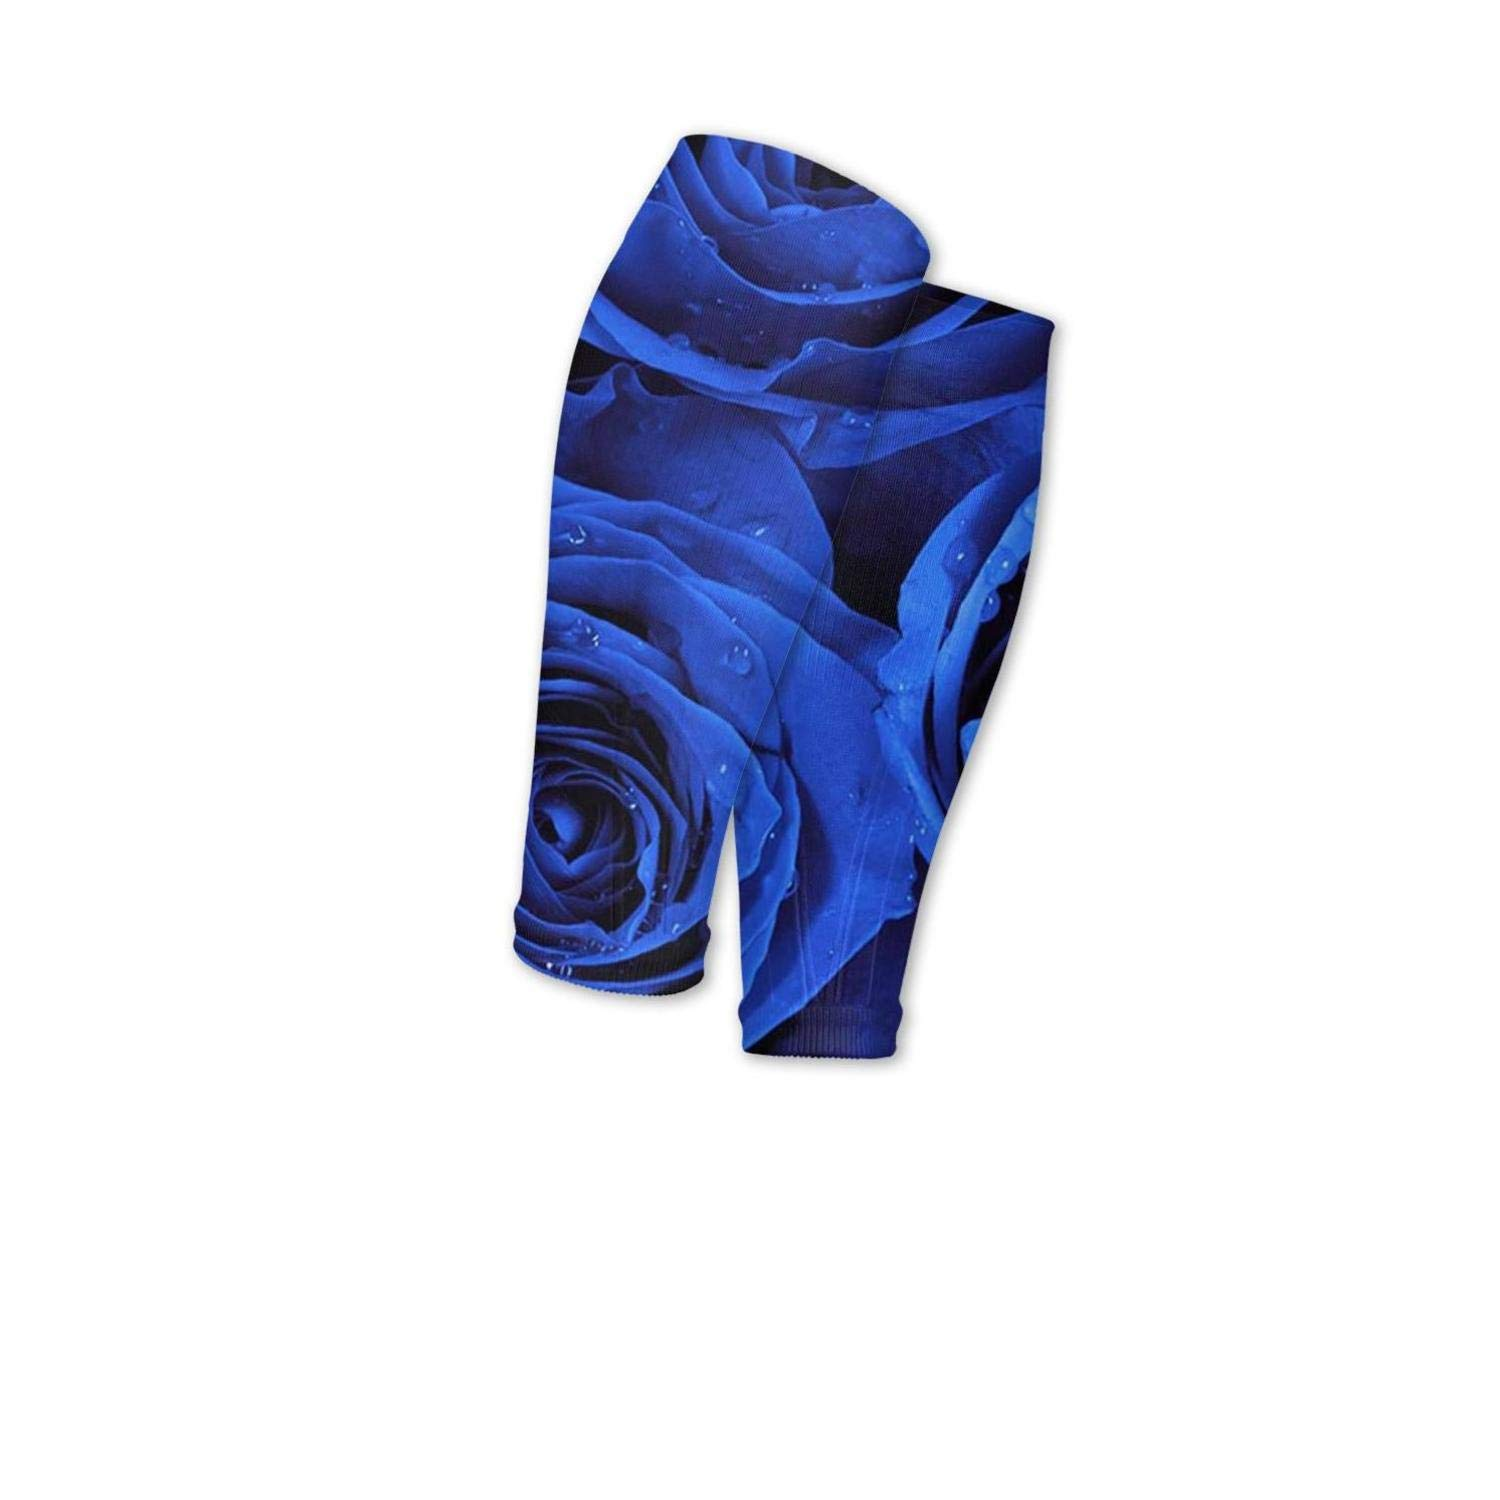 Smilelolly funny blue rose with water drop Calf Compression Sleeves Helps Calf Guard Leg Sleeves for Men Women